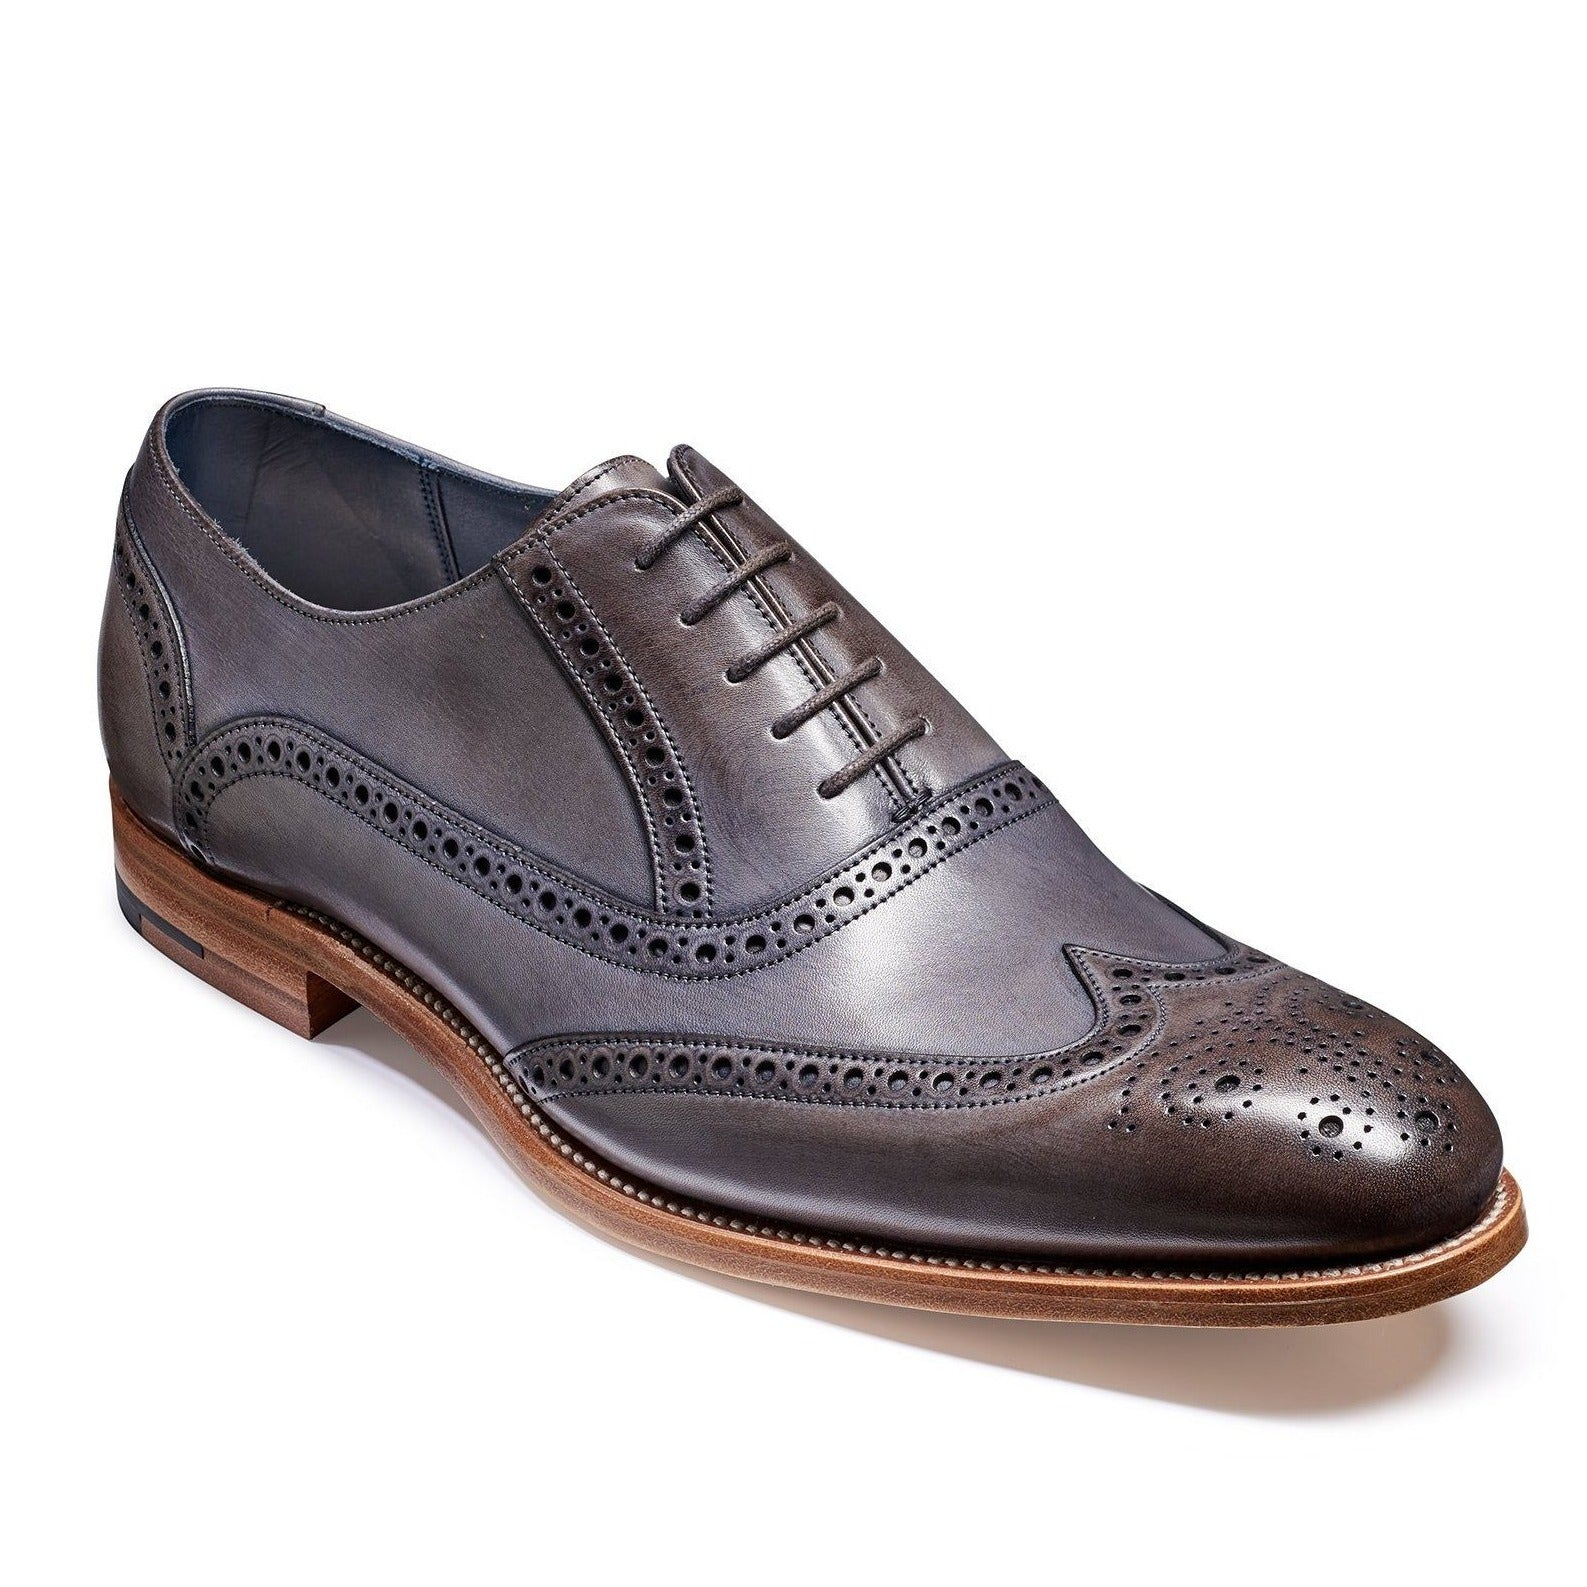 Valiant Grey Painted Brogues - Leonard Silver